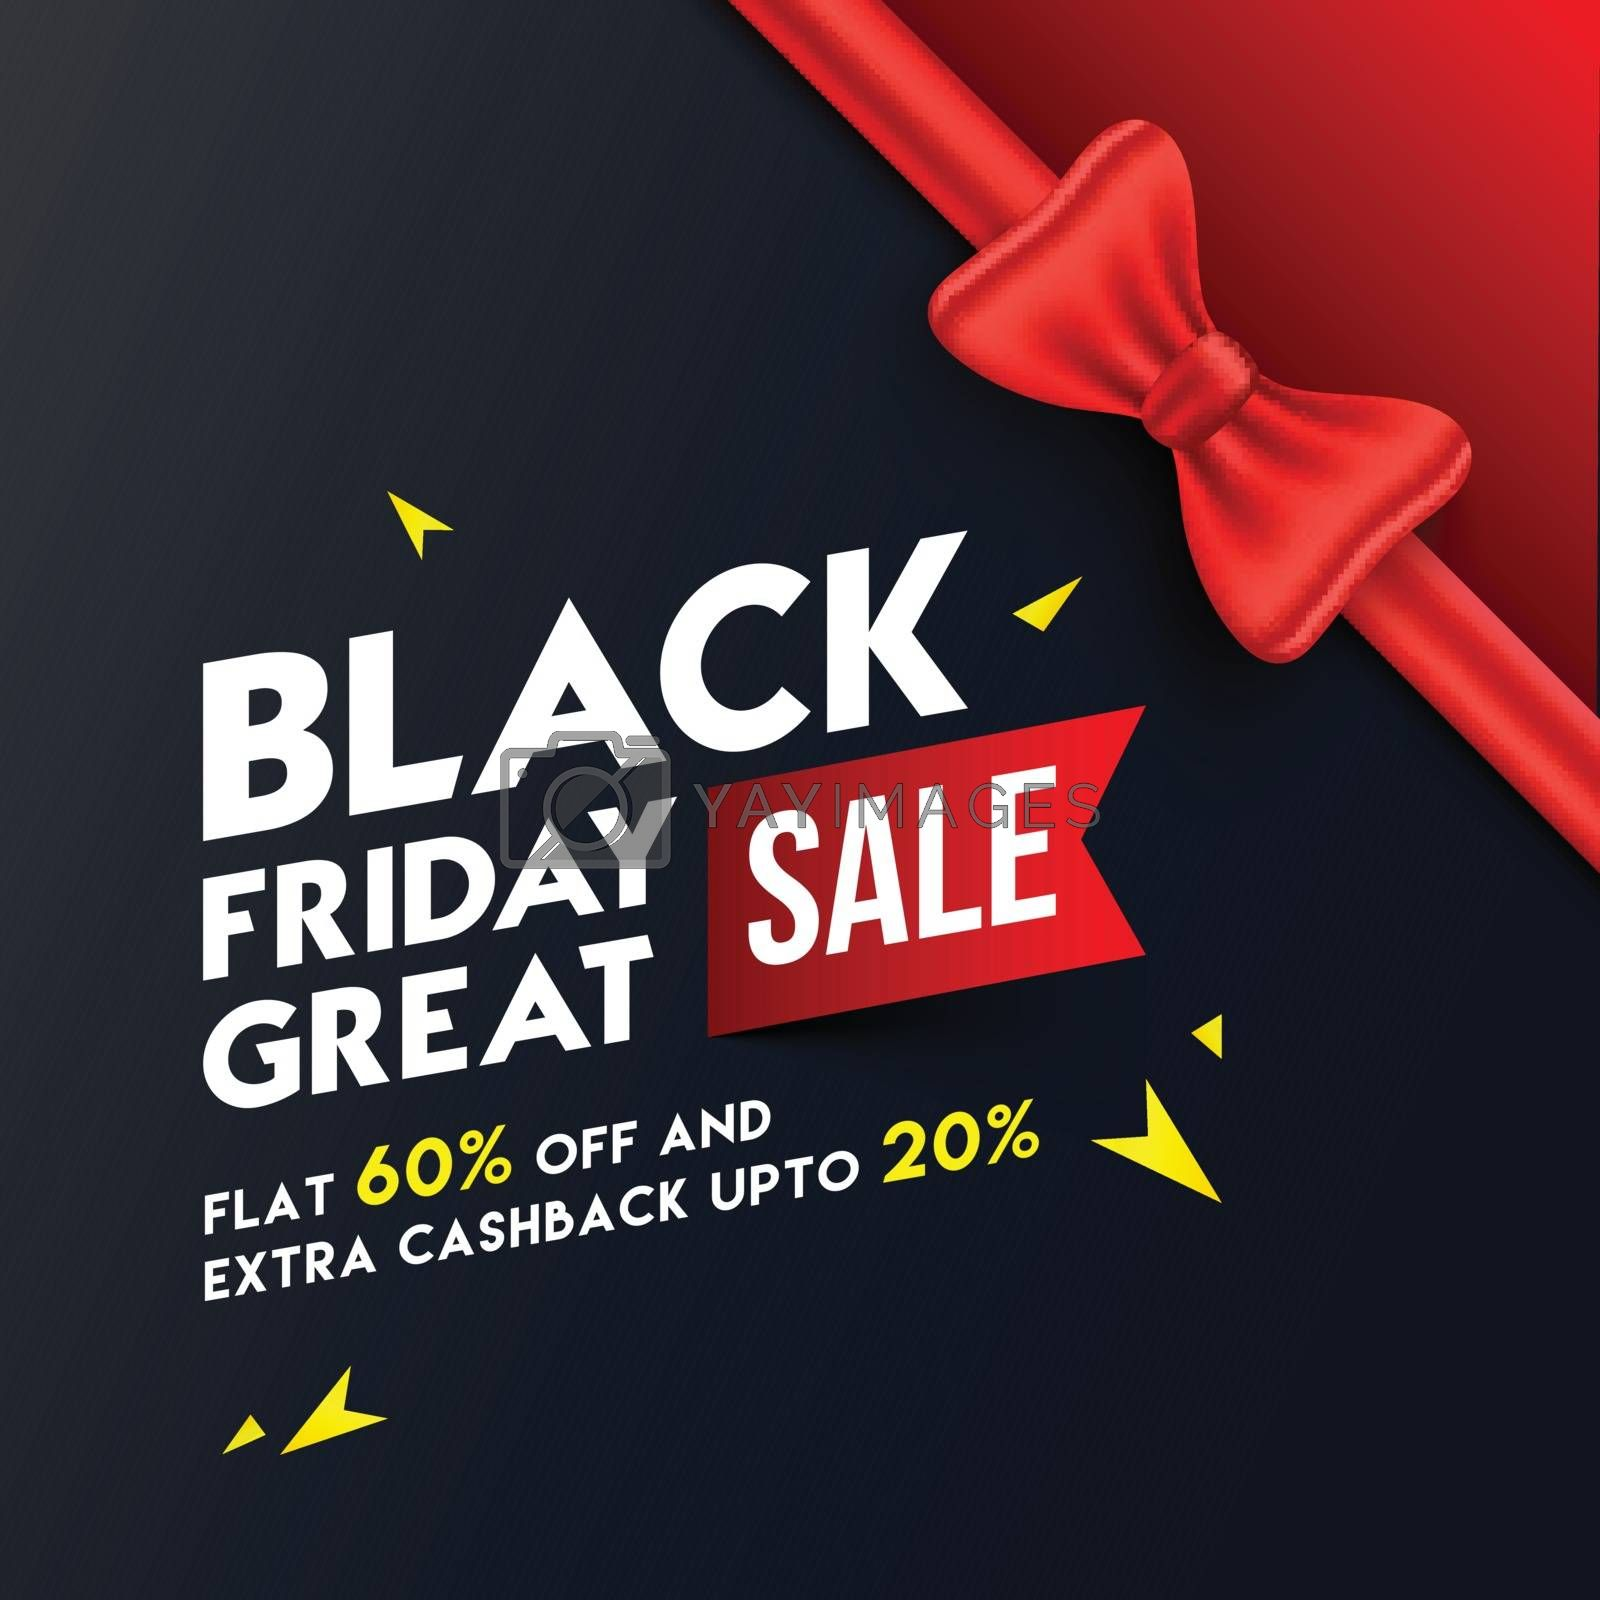 Great Black Friday Sale template or flyer design, flat 60% with extra 20% discount offer and illustration of glossy red ribbon